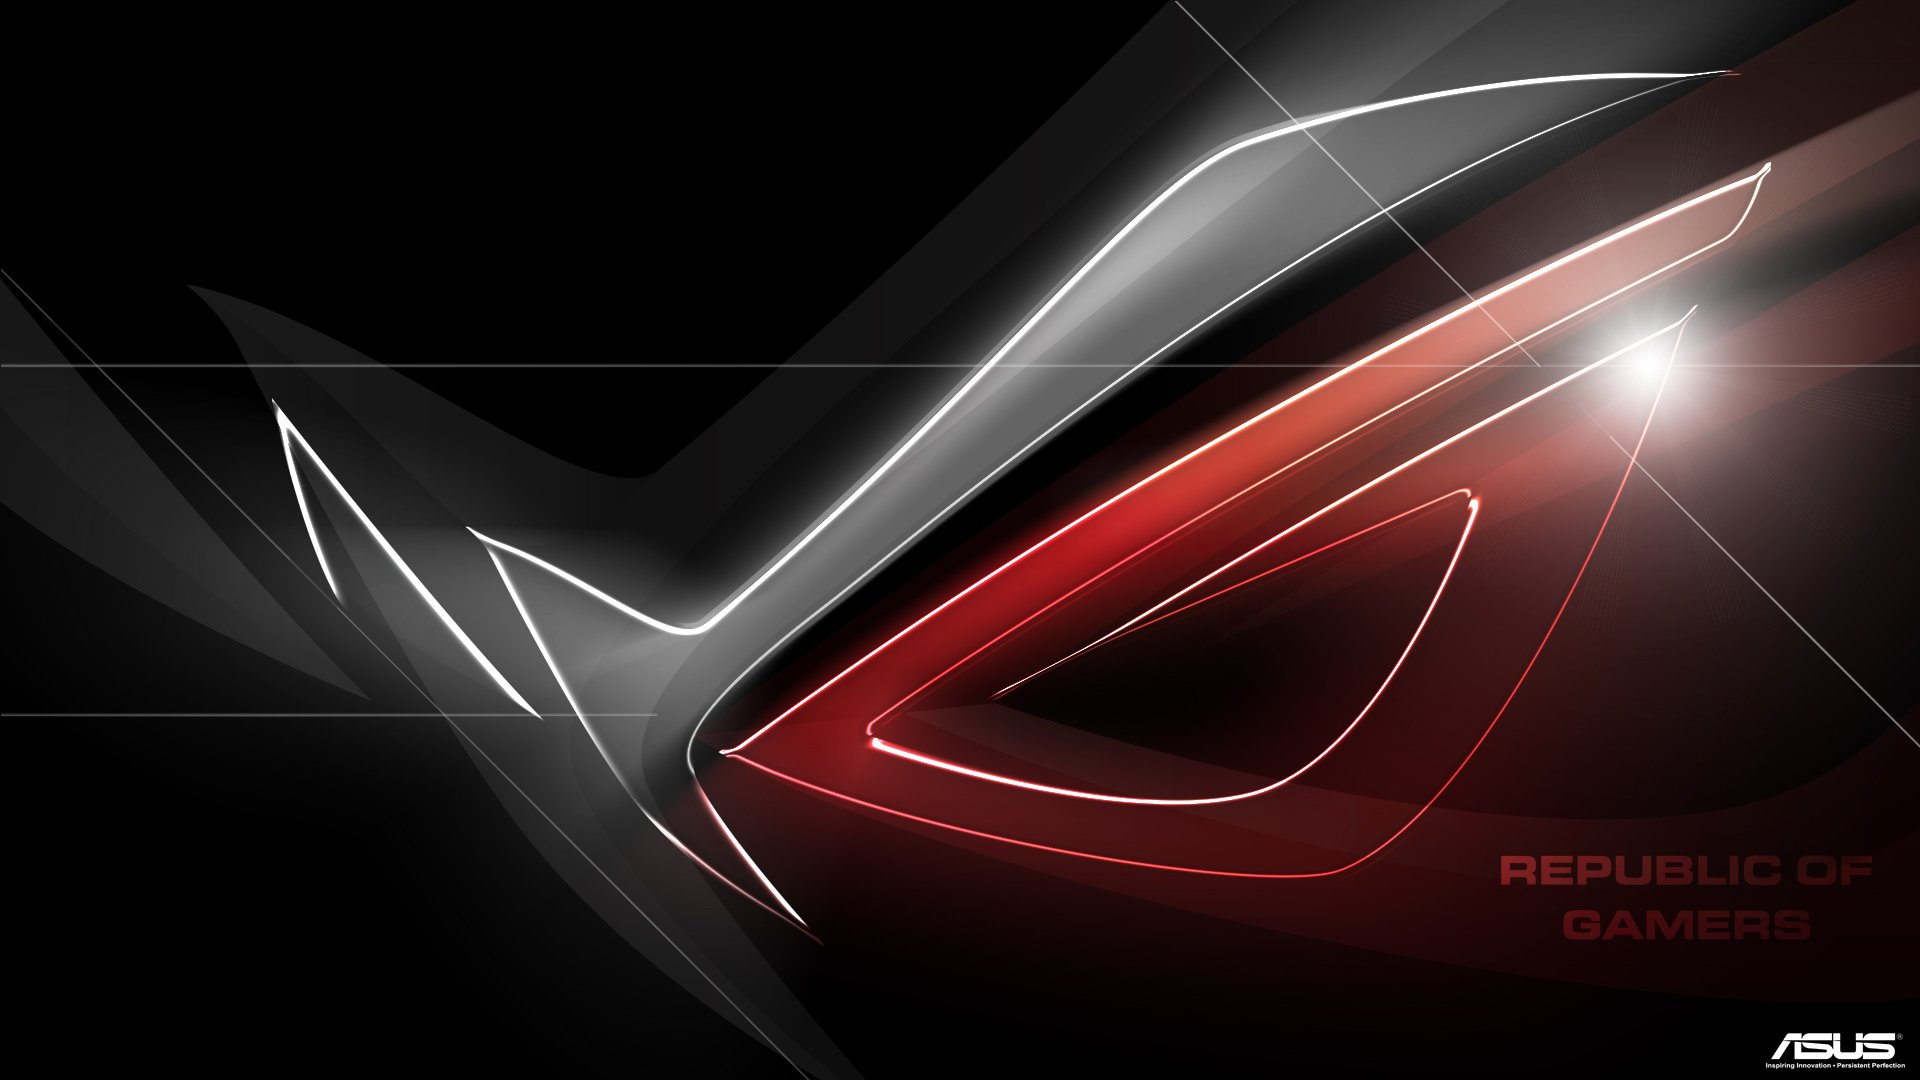 Asus Hd Wallpaper Background Image 1920x1080 Id756124